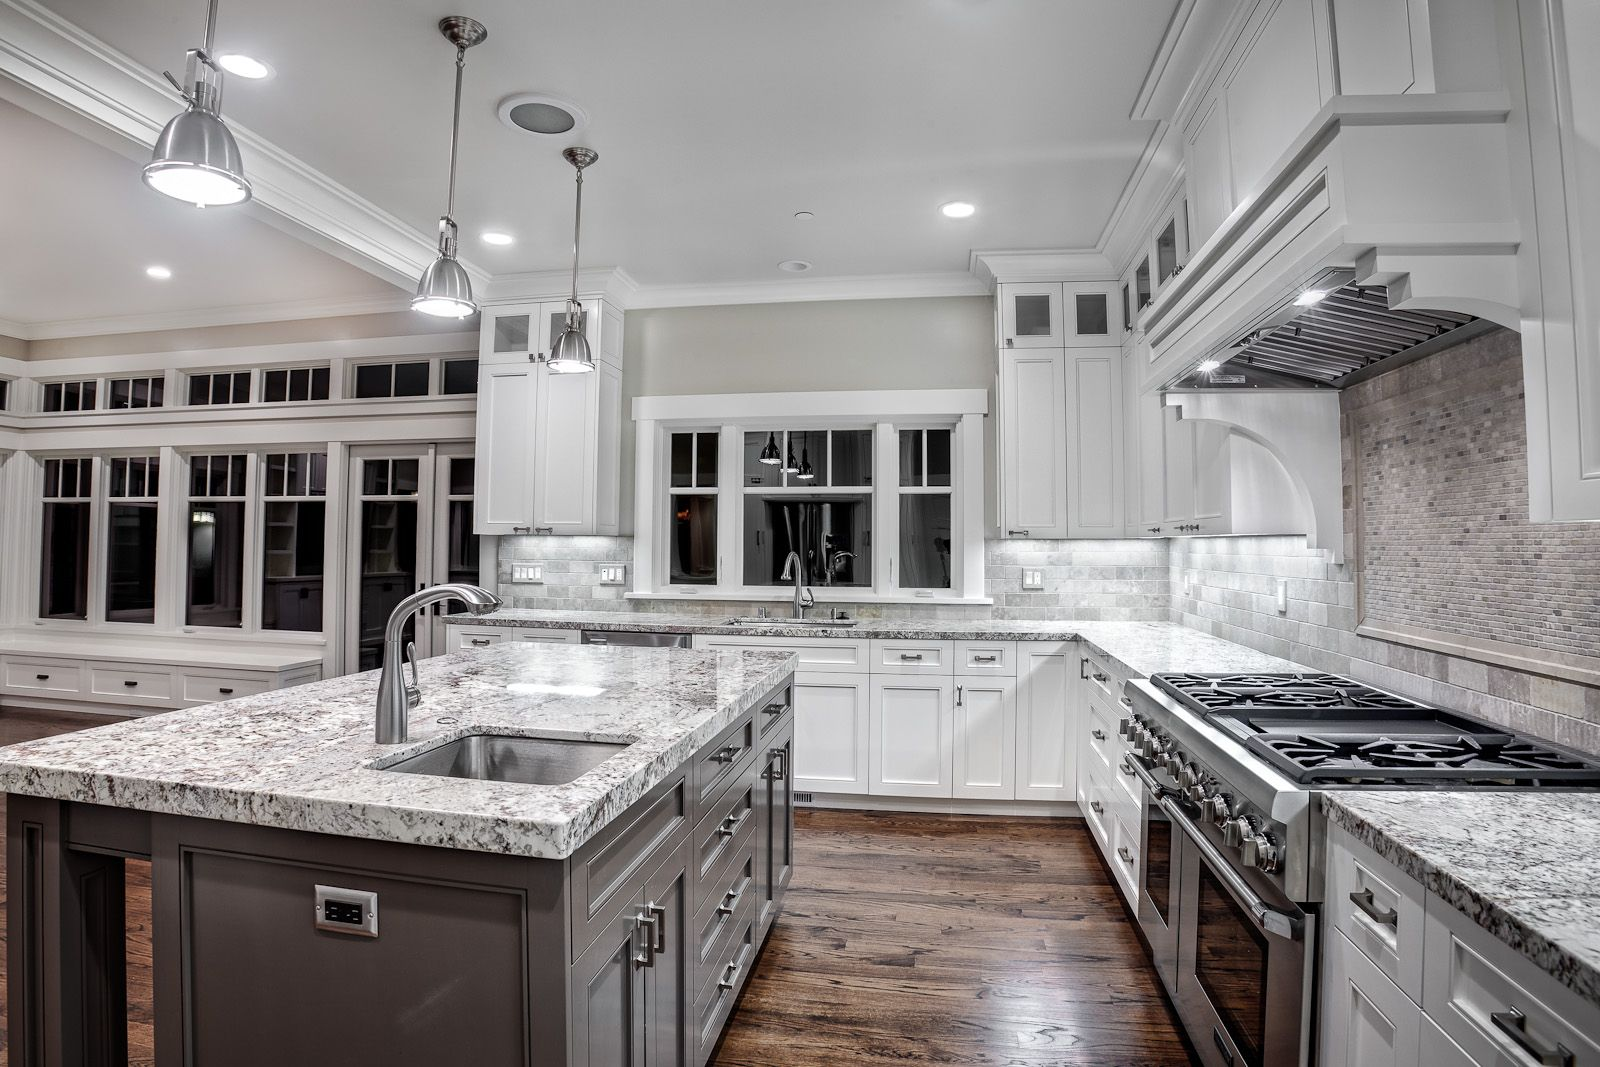 Wonderful kashmir white granite countertops for contemporary kitchen ideas together with metal pendant lamps and wooden